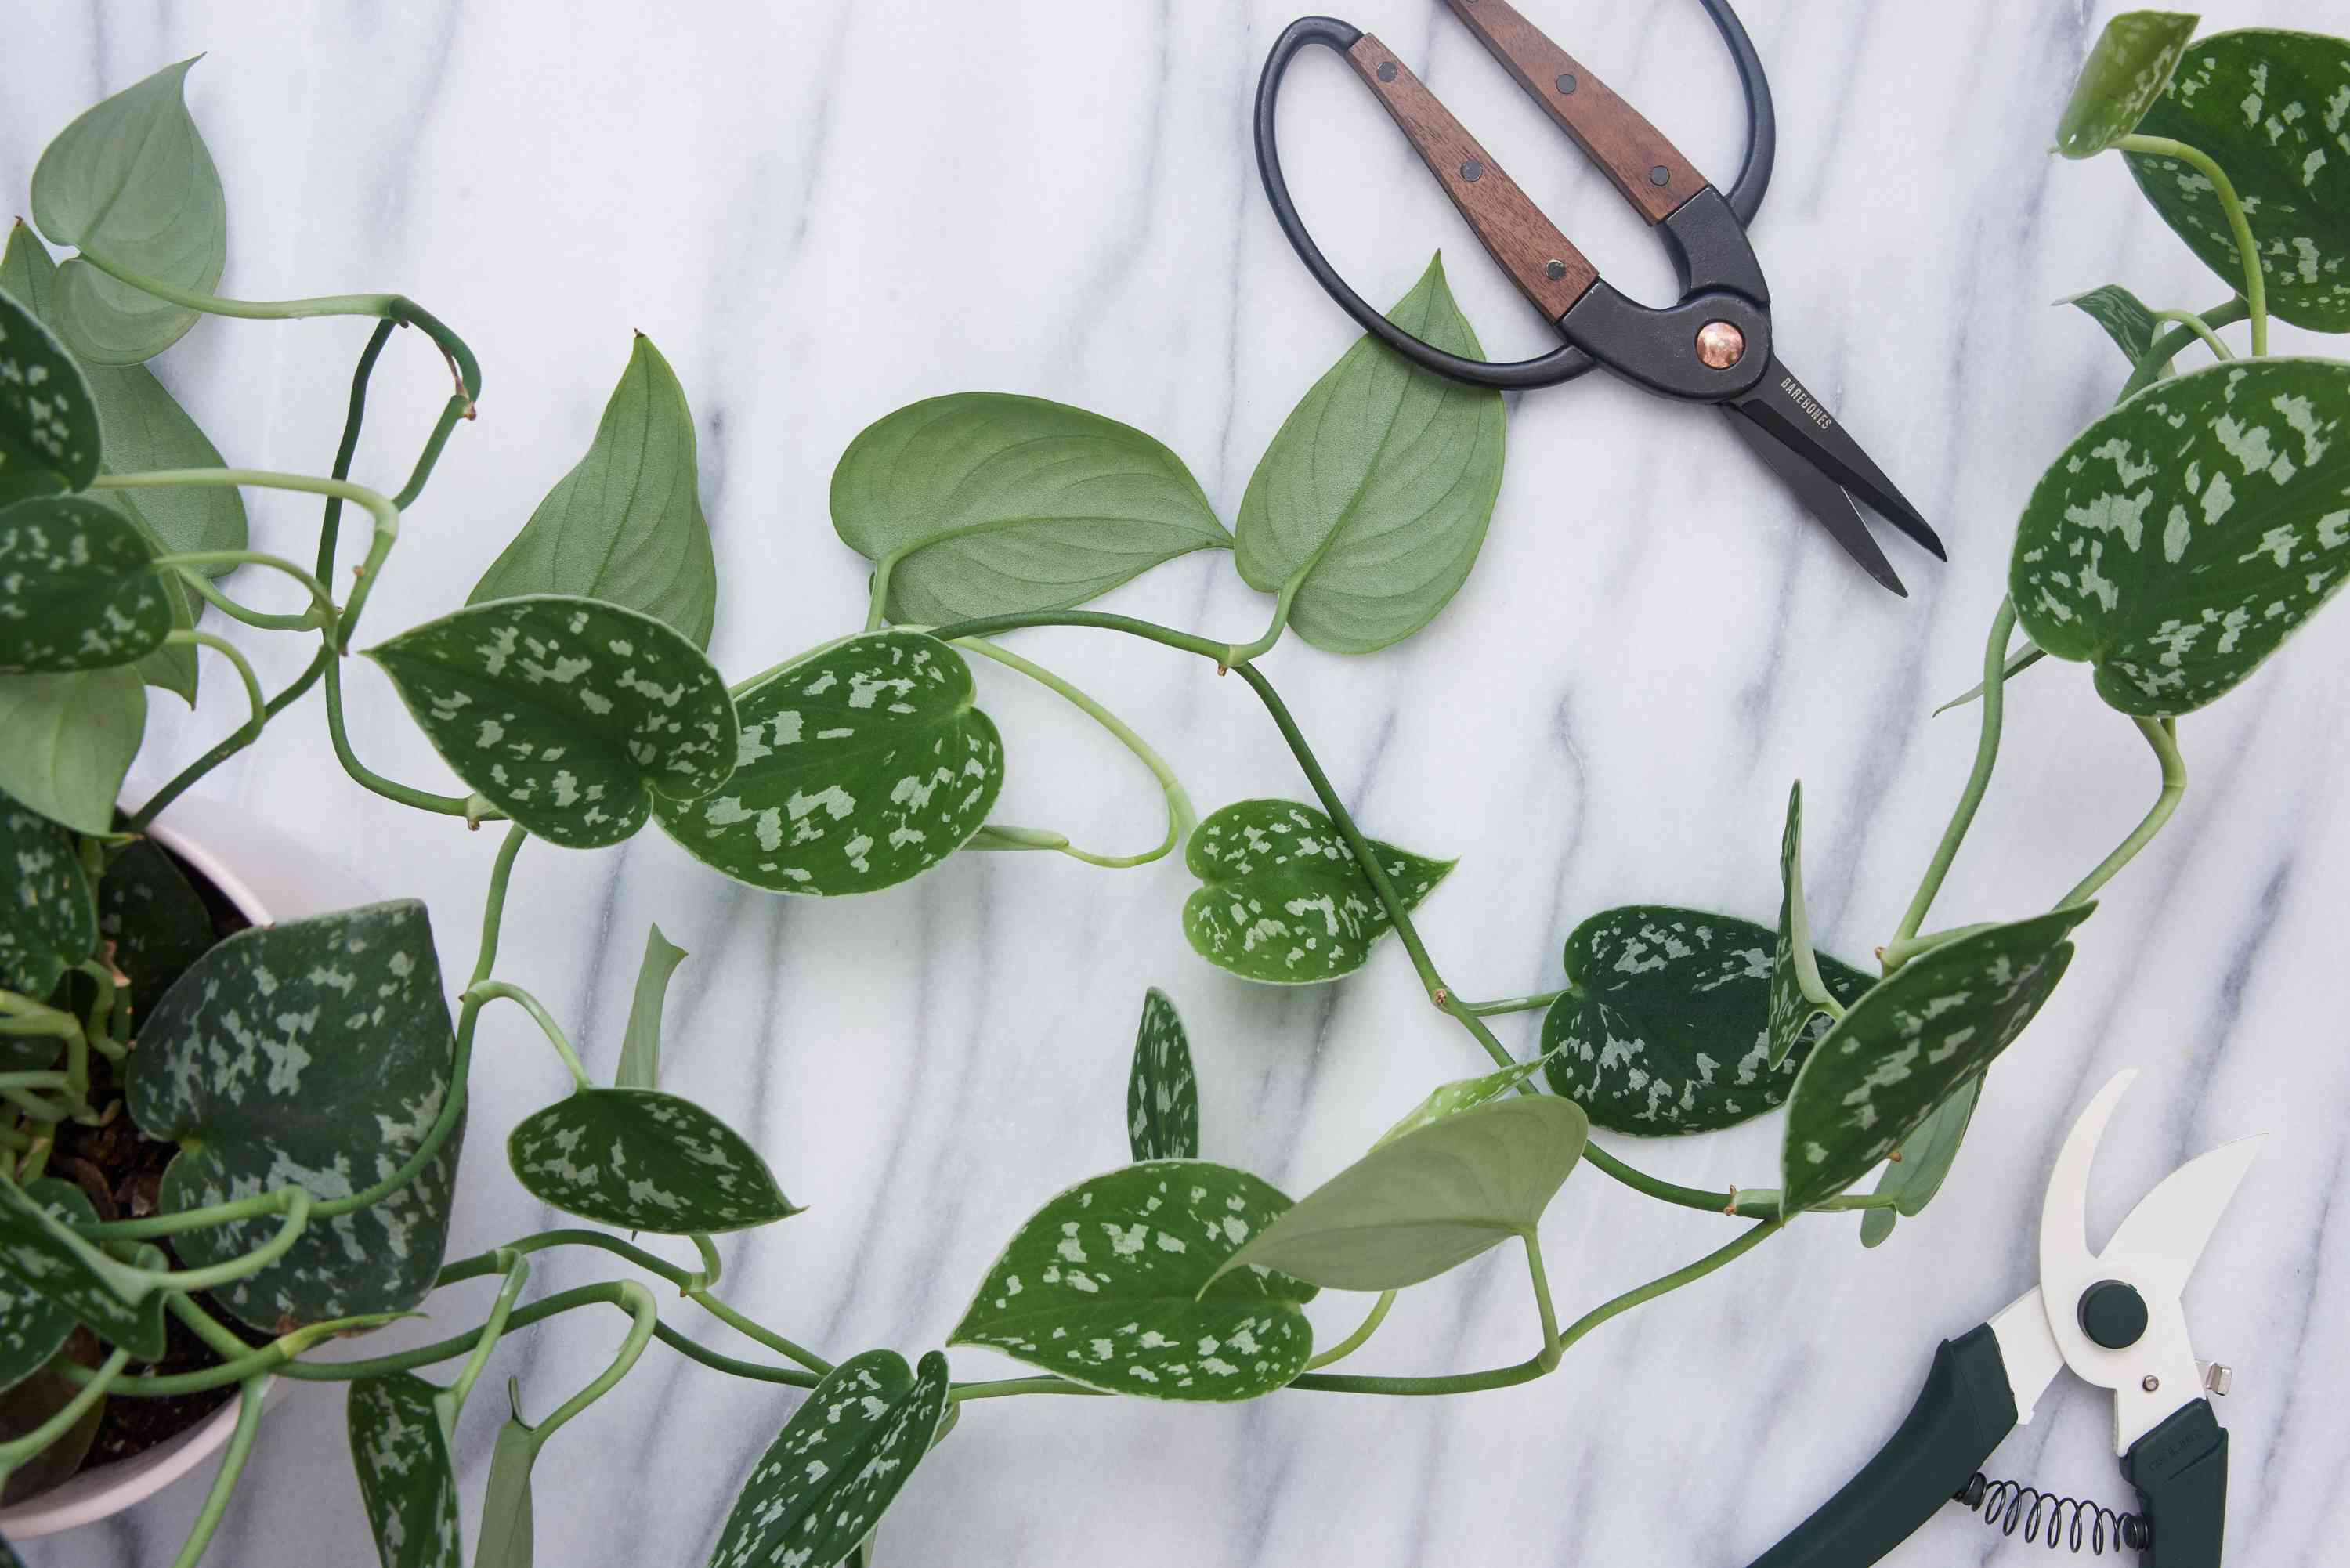 houseplant pruning materials